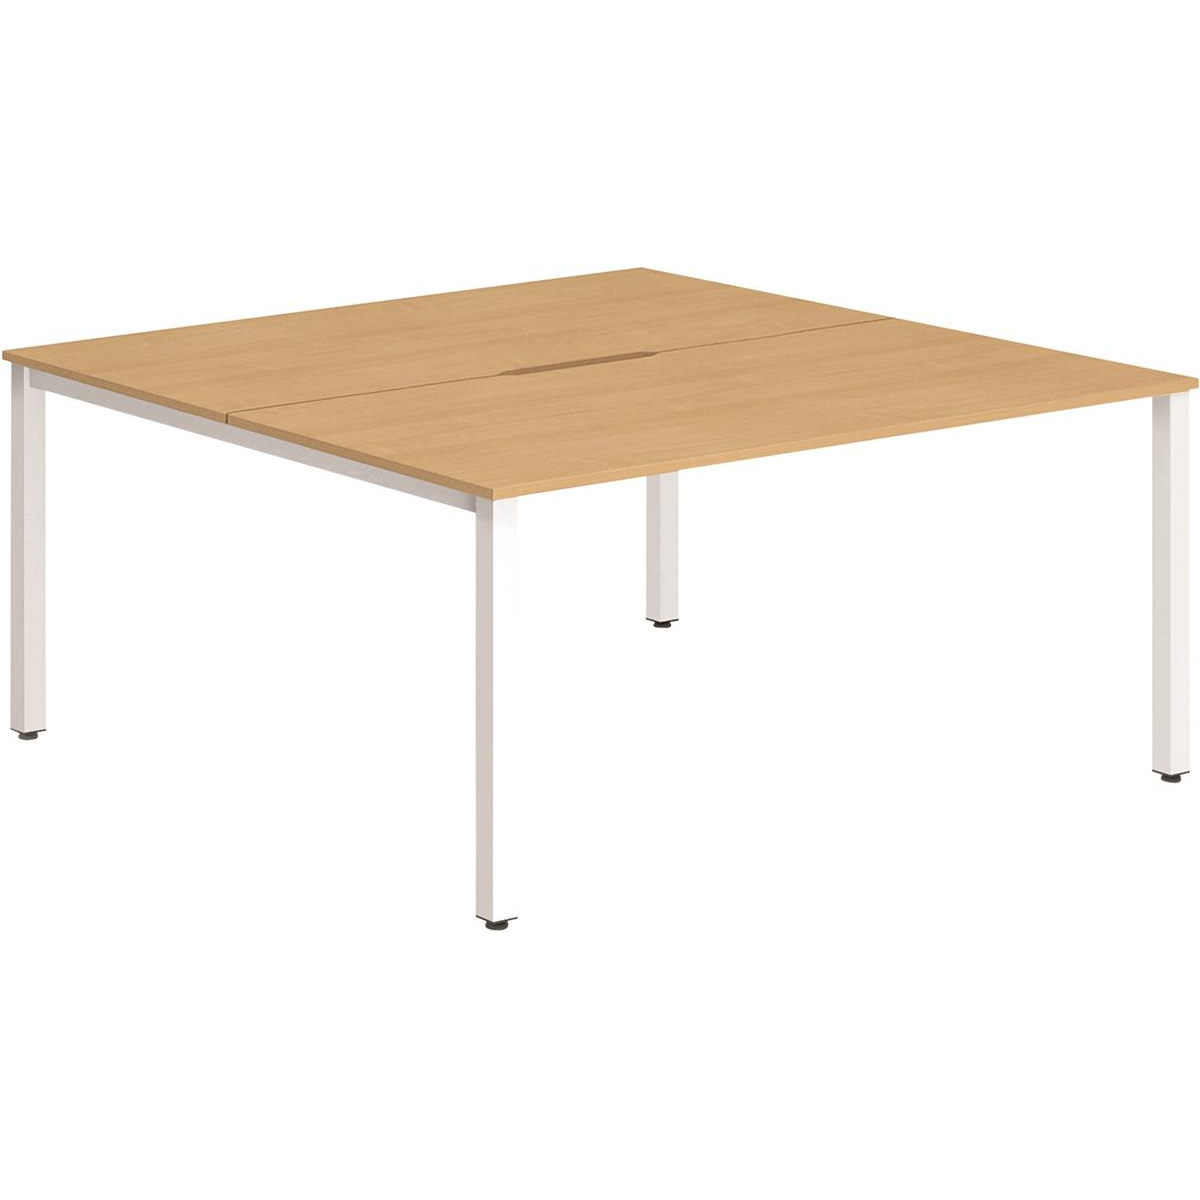 Trexus Bench Desk 2 Person Back to Back Configuration White Leg 1200x1600mm Beech Ref BE167